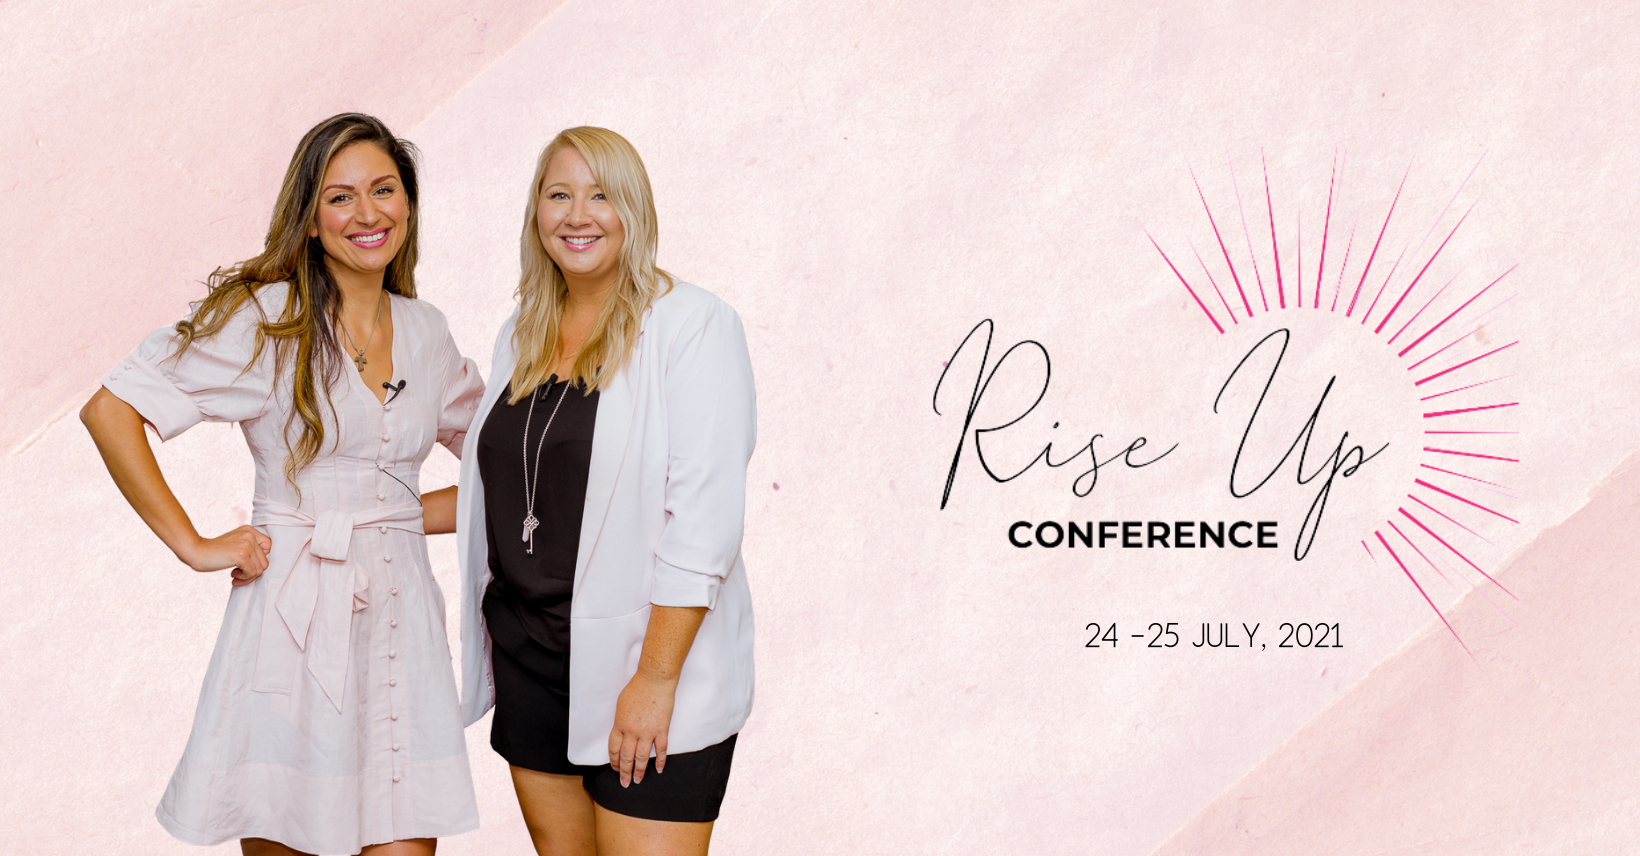 THE RISE UP CONFERENCE